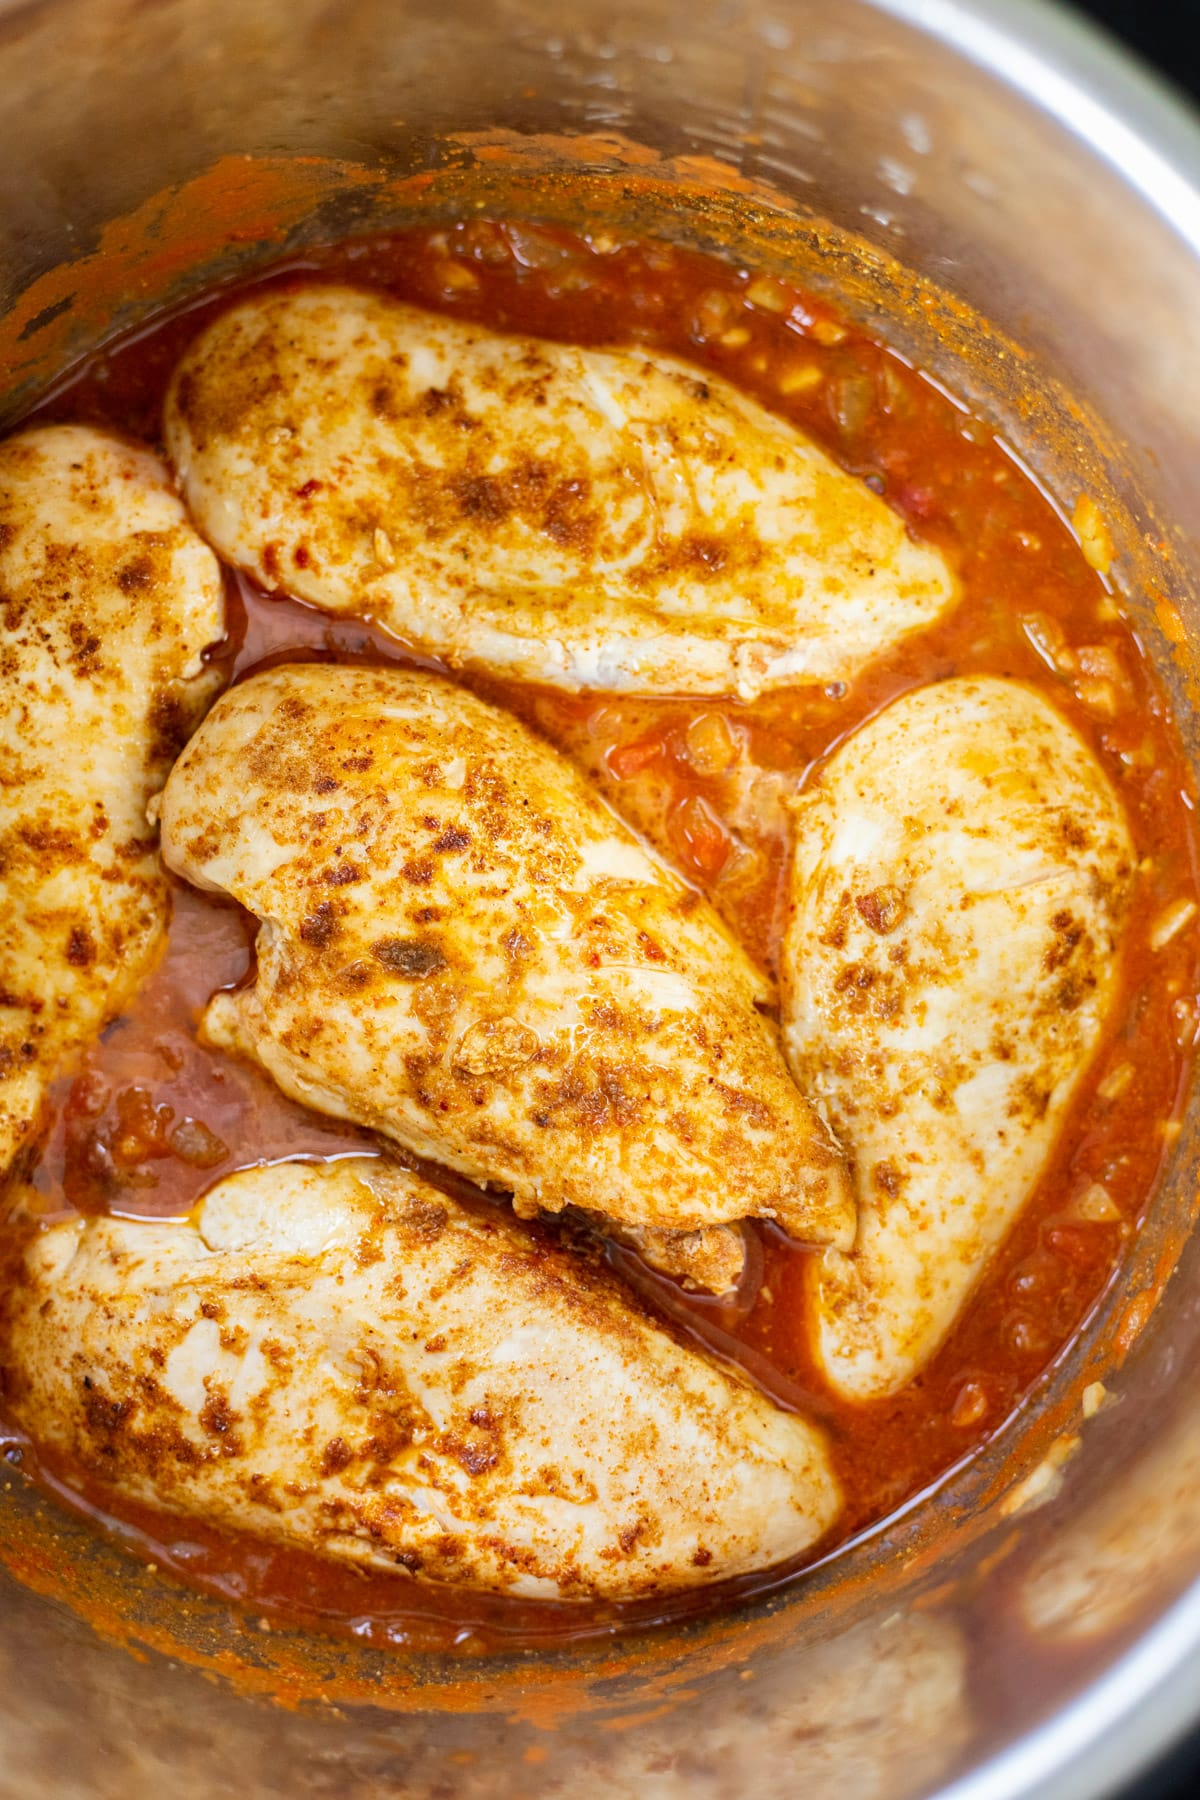 Seared chicken breasts in the Instant Pot on top of spiced tomato sauce.